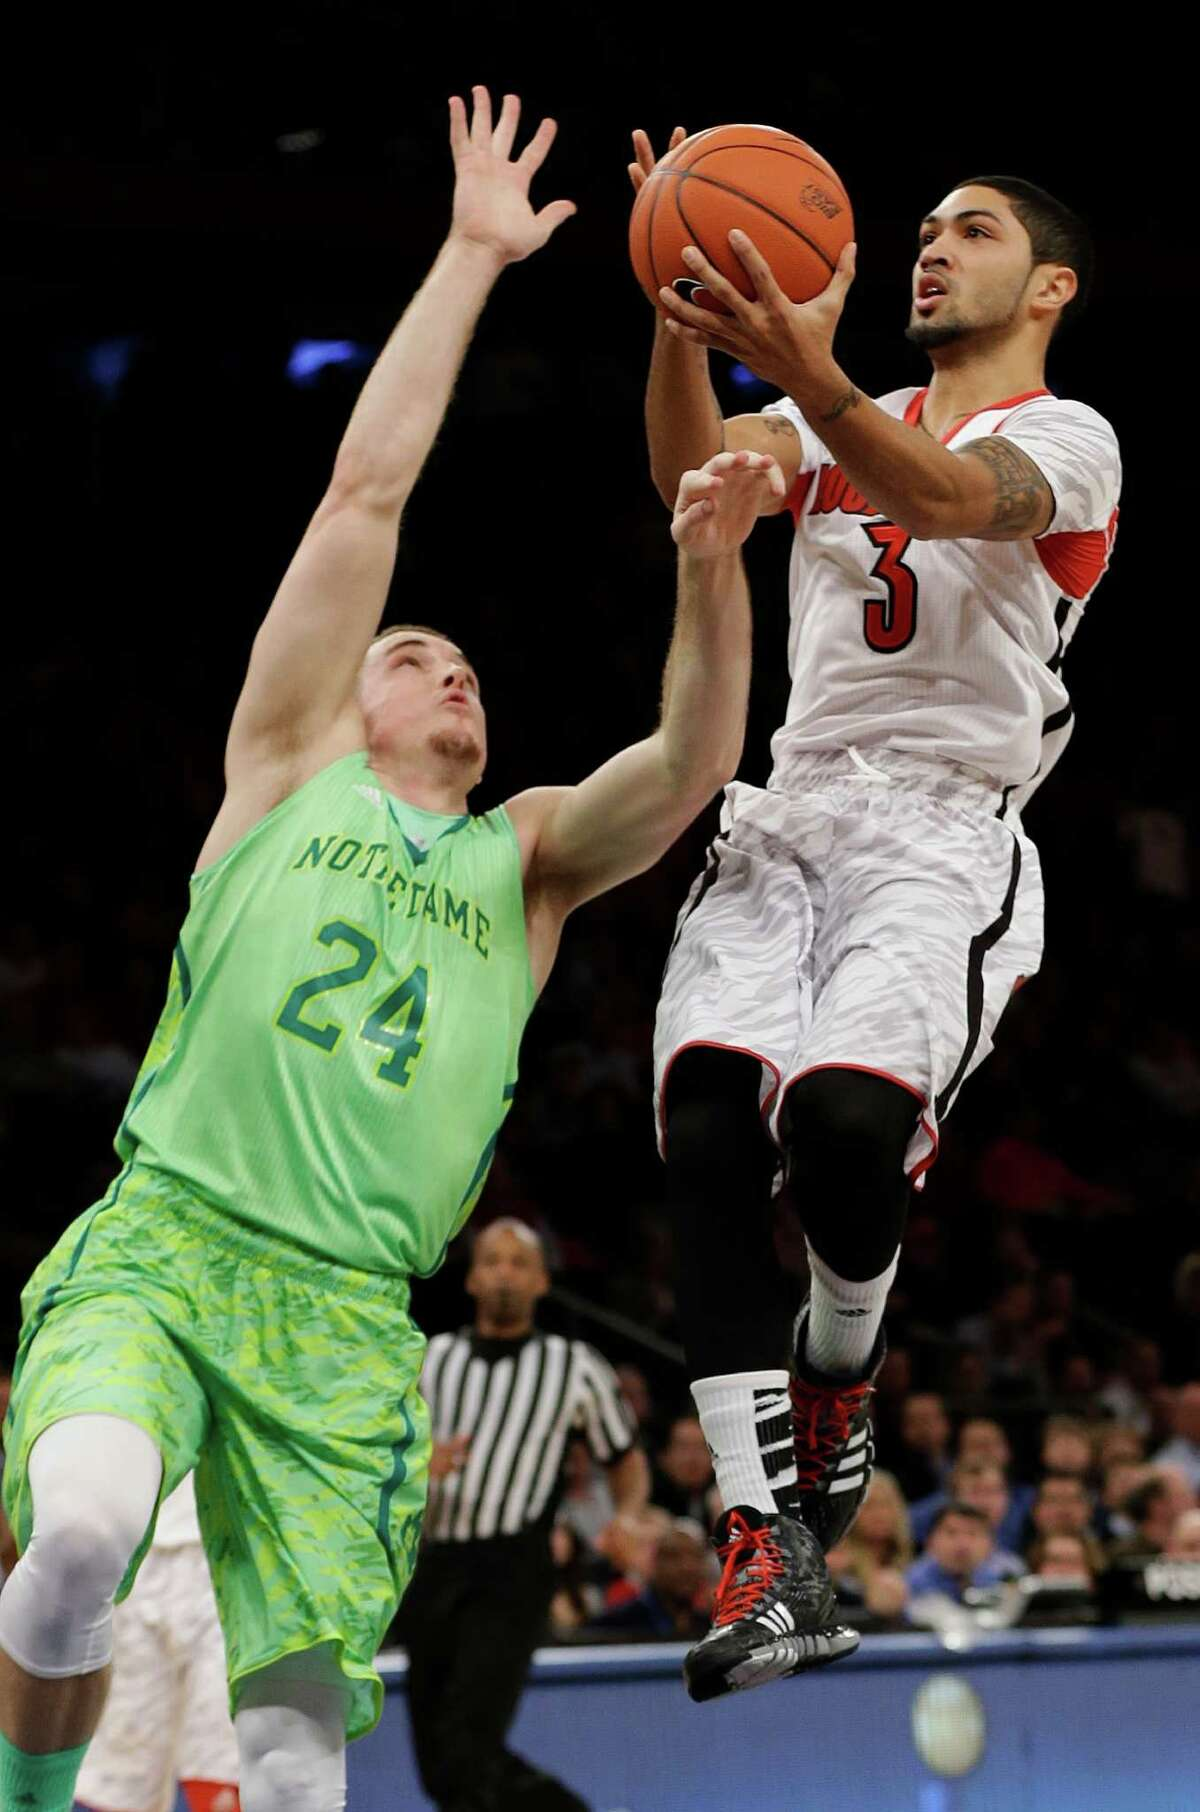 This March 15, 2013, file photo shows Louisville's Peyton Siva (3) driving past Notre Dame's Pat Connaughton (24) during the first half of an NCAA college basketball game at the Big East Conference tournament in New York. The neon-colored jerseys and camouflage-covered shorts debuted by six teams in their post-season conference championships ahead of the NCAA men's basketball tournament weren't well received in the press and social media. The changes happened to be in line with fashion runways and in recreational athleticwear, where highlighter brights and creative camo have been bona fide trends, and alternate uniforms have become part of the college football and basketball landscape, but on the court, these uniforms still made fans cringe.